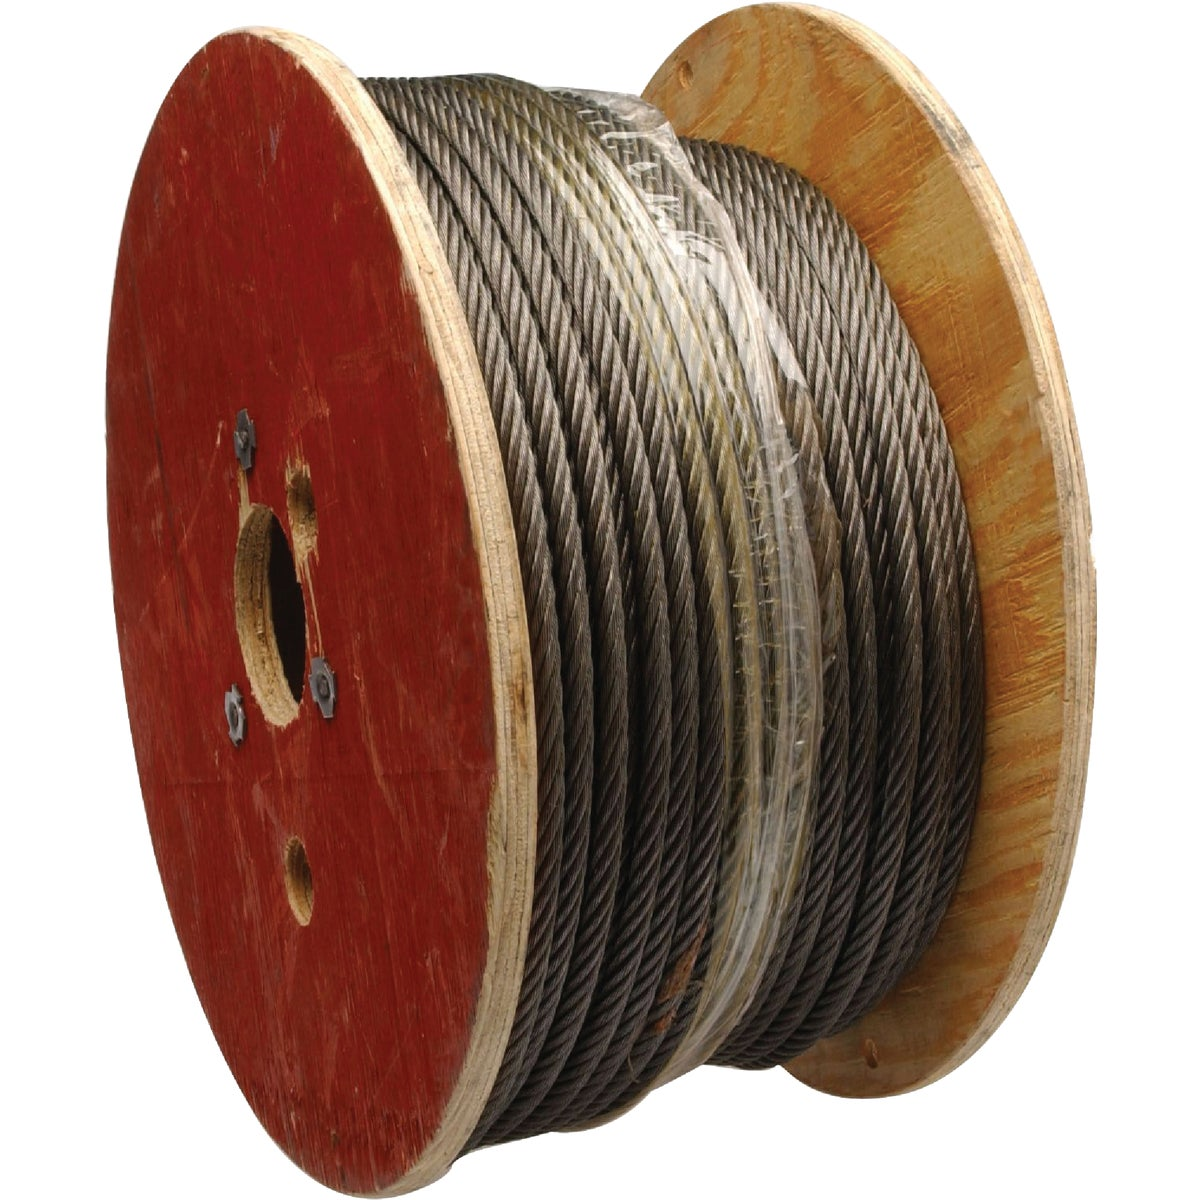 "250' 1/2"" 6X19 WIRE ROPE - 7008427 by Cooper Campbell Apex"